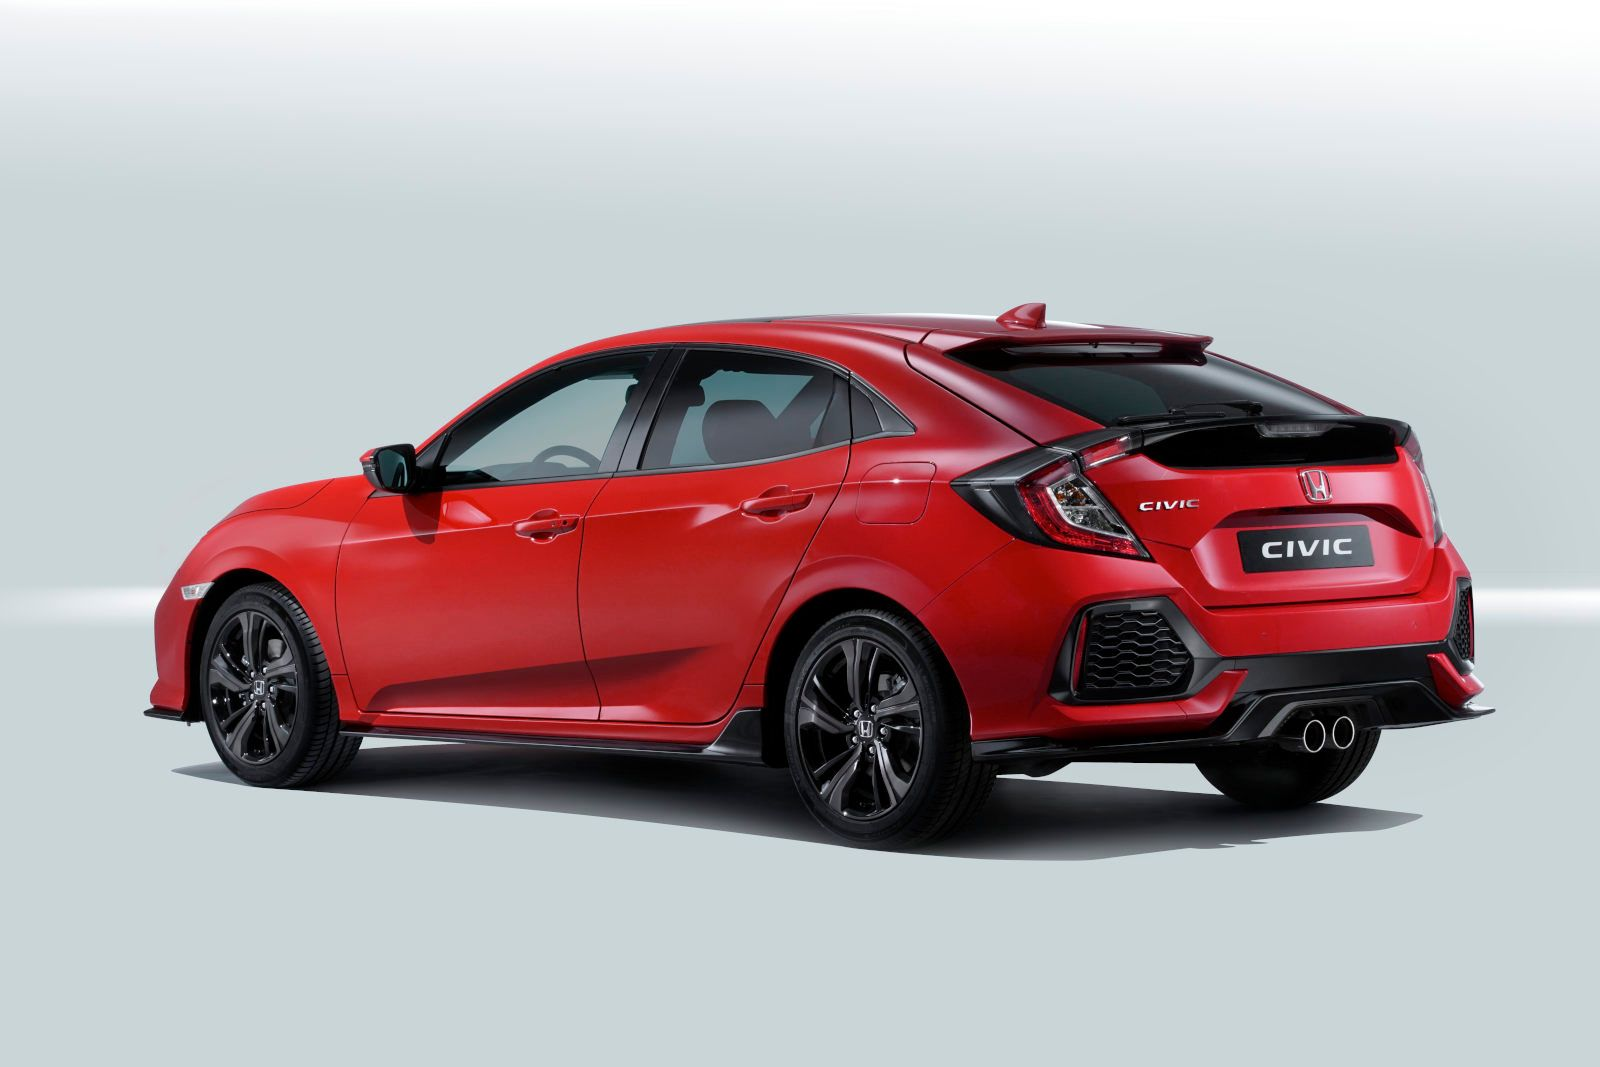 new-civic-hatchback-105_01